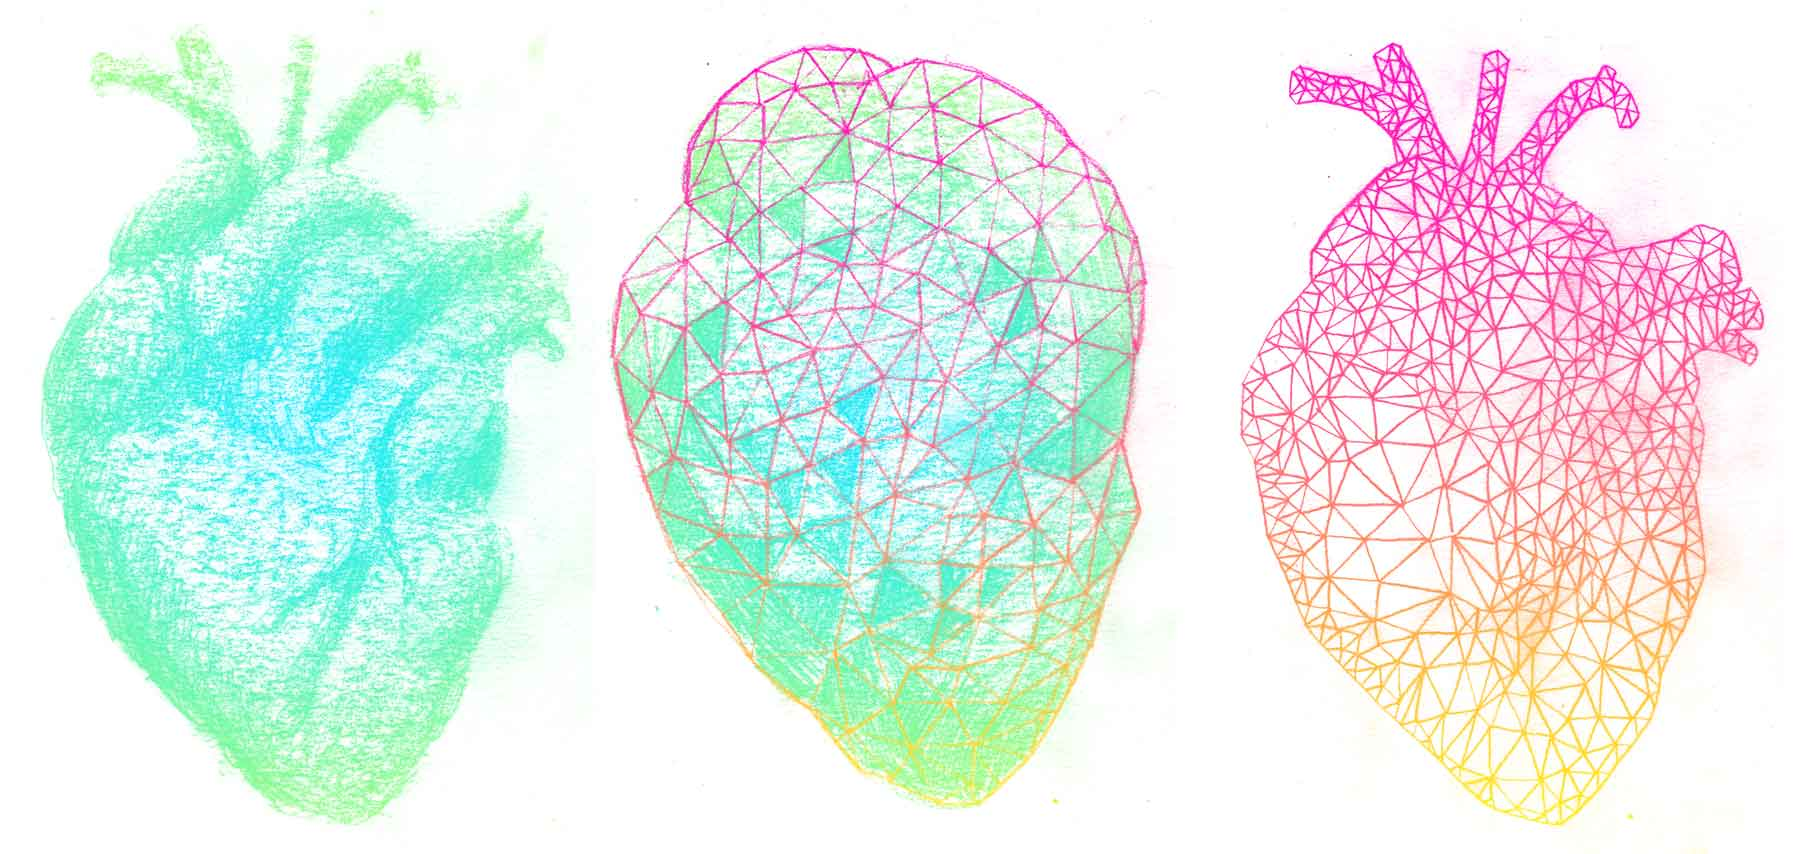 Three early iterations of the heart illustration used in the site design.